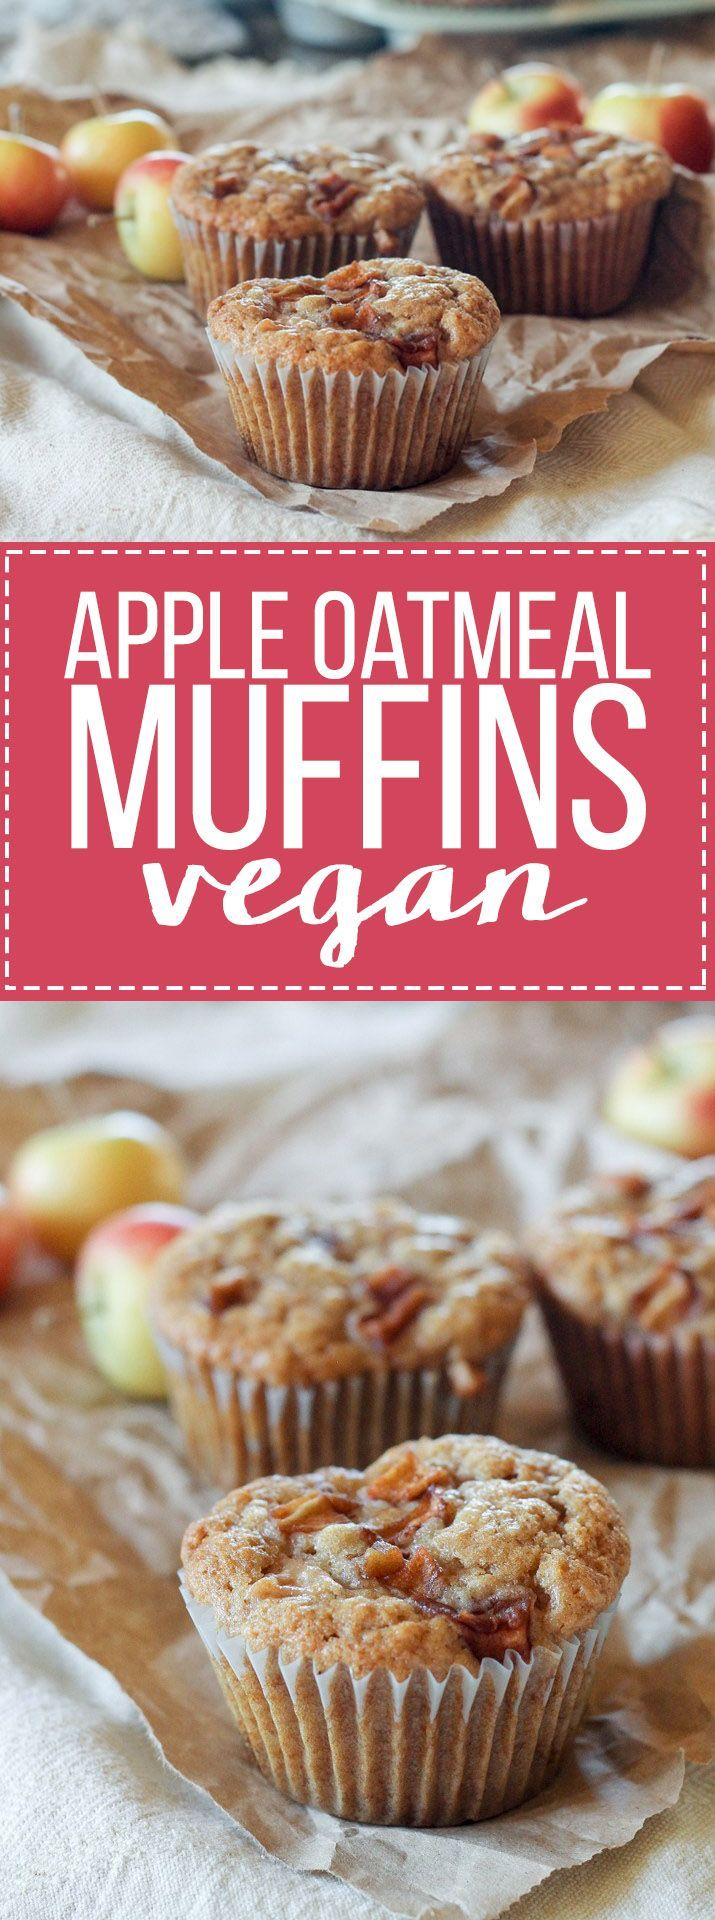 These Apple Oatmeal Muffins are naturally vegan and absolutely full of apple fla... These Apple Oatmeal Muffins are naturally vegan and absolutely full of apple fla...,